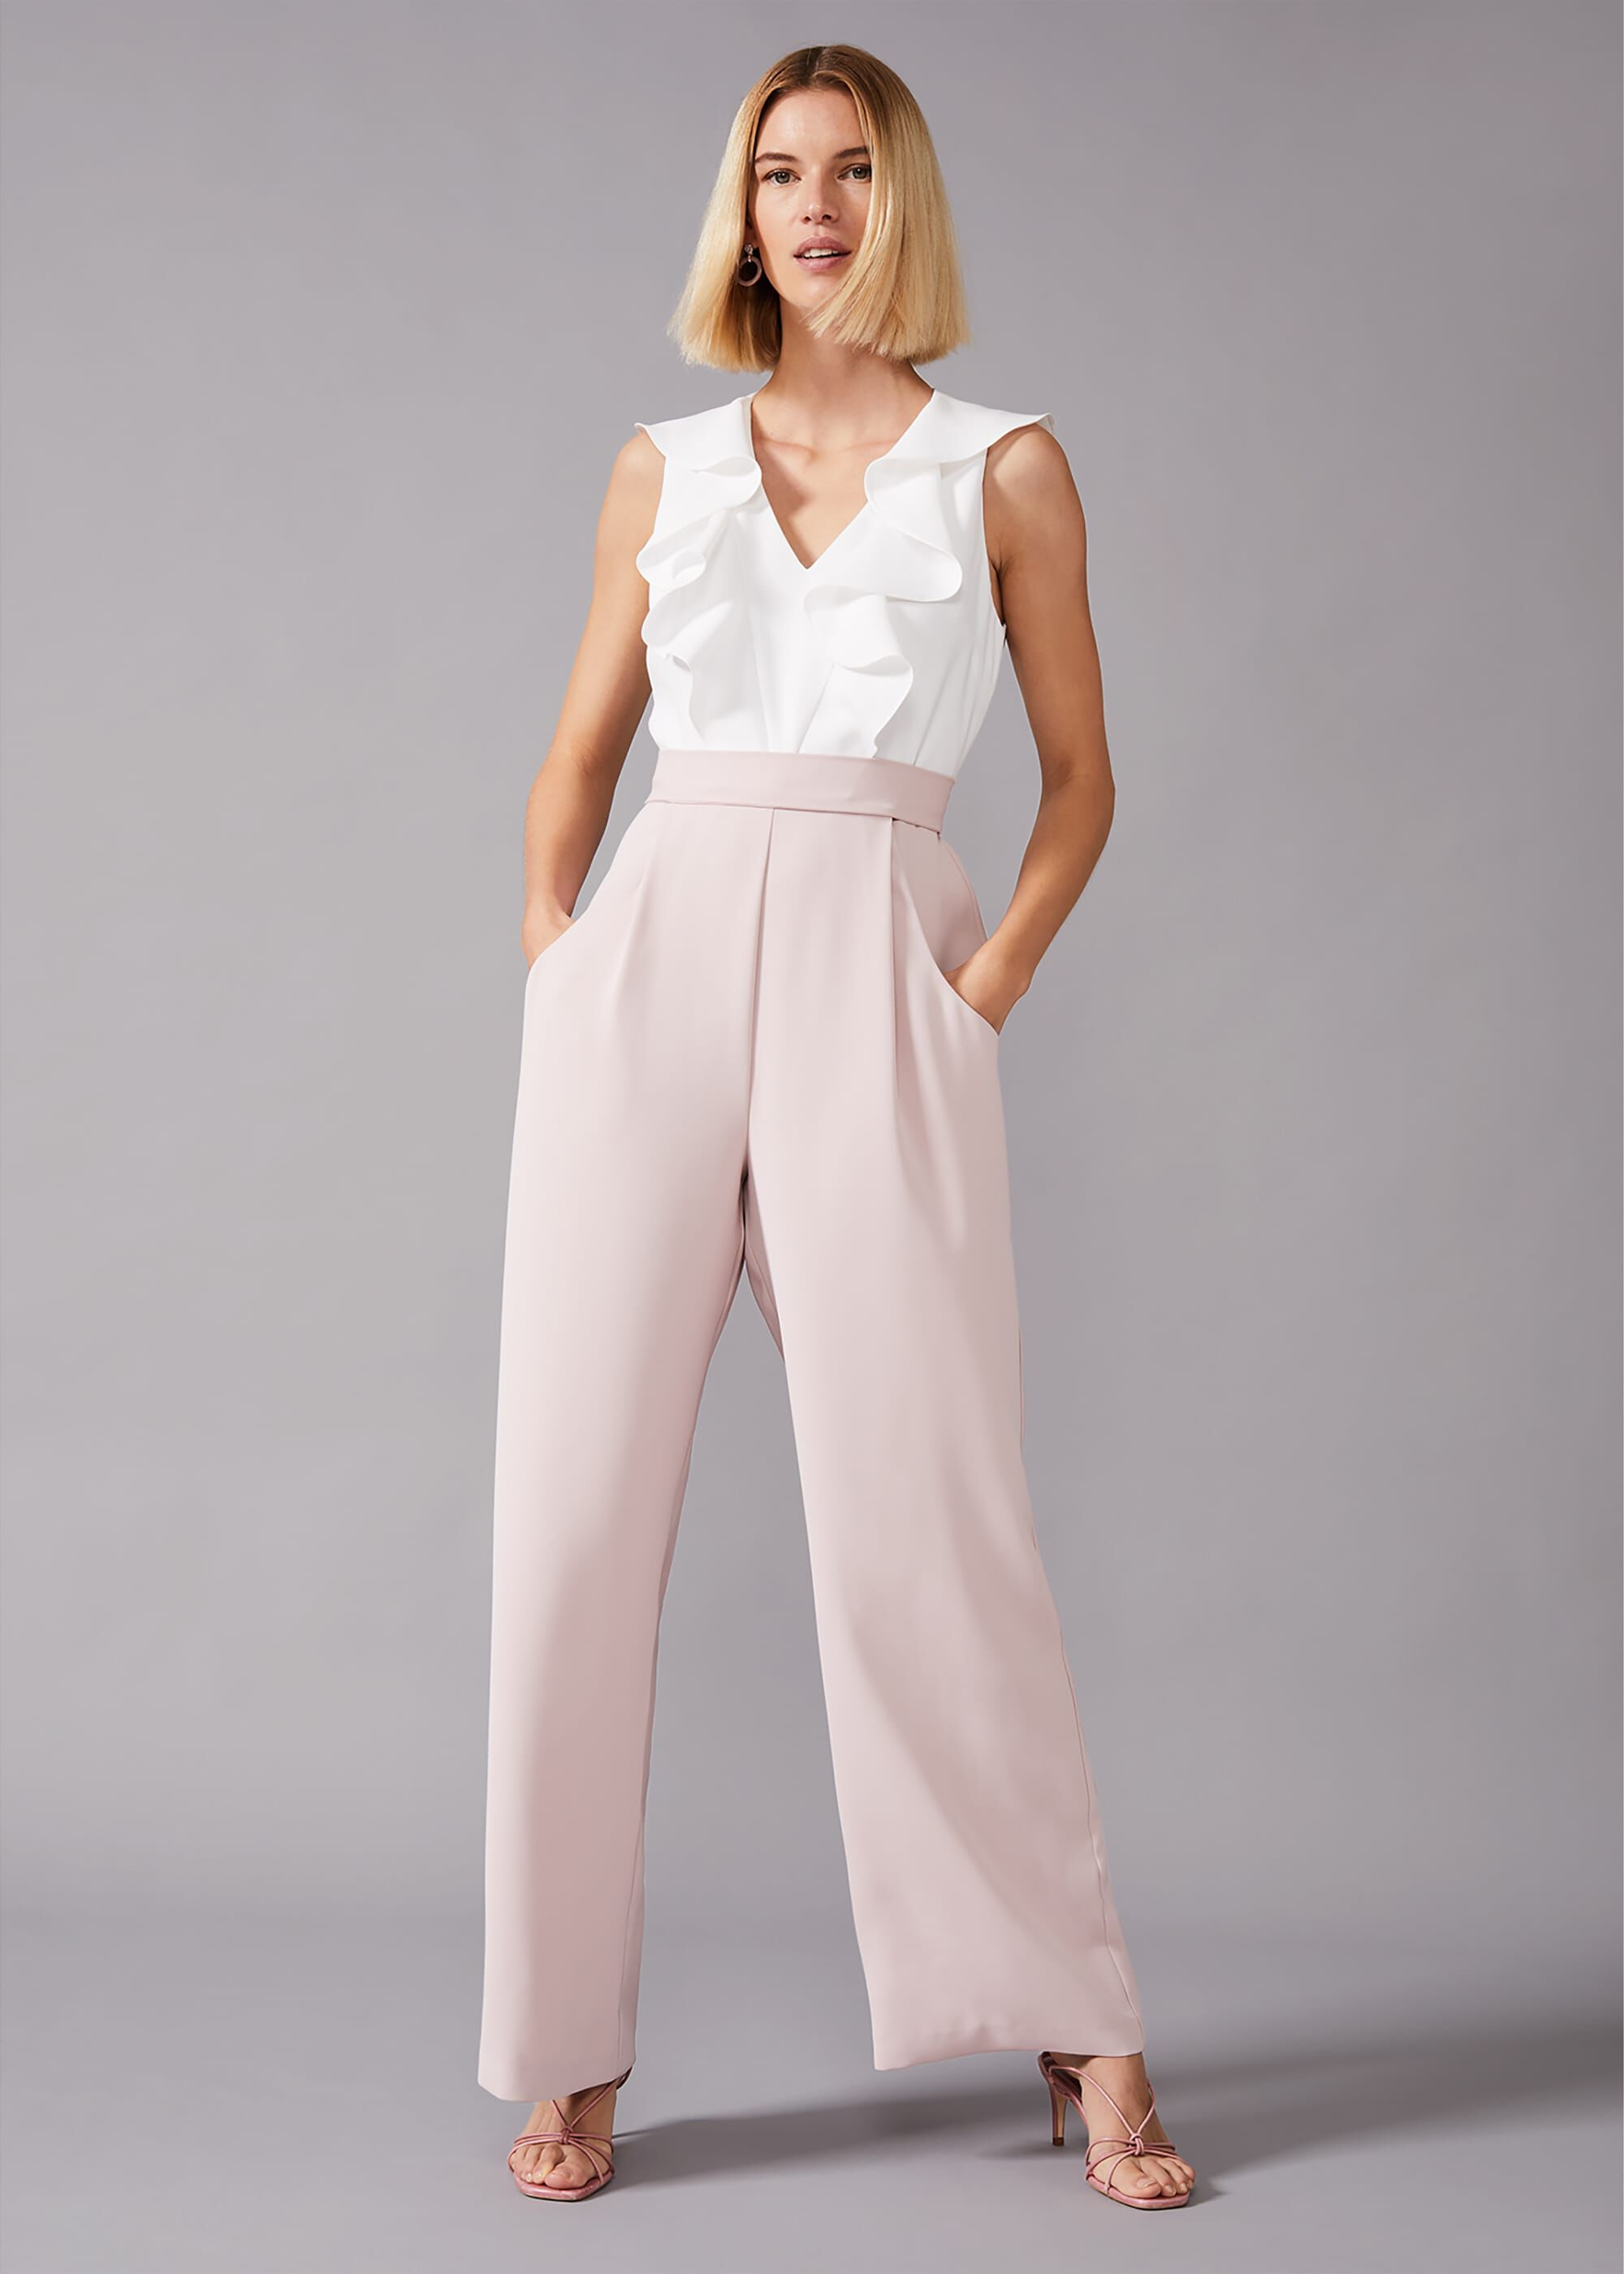 Phase Eight Linda Frill Jumpsuit, Pink, Jumpsuit